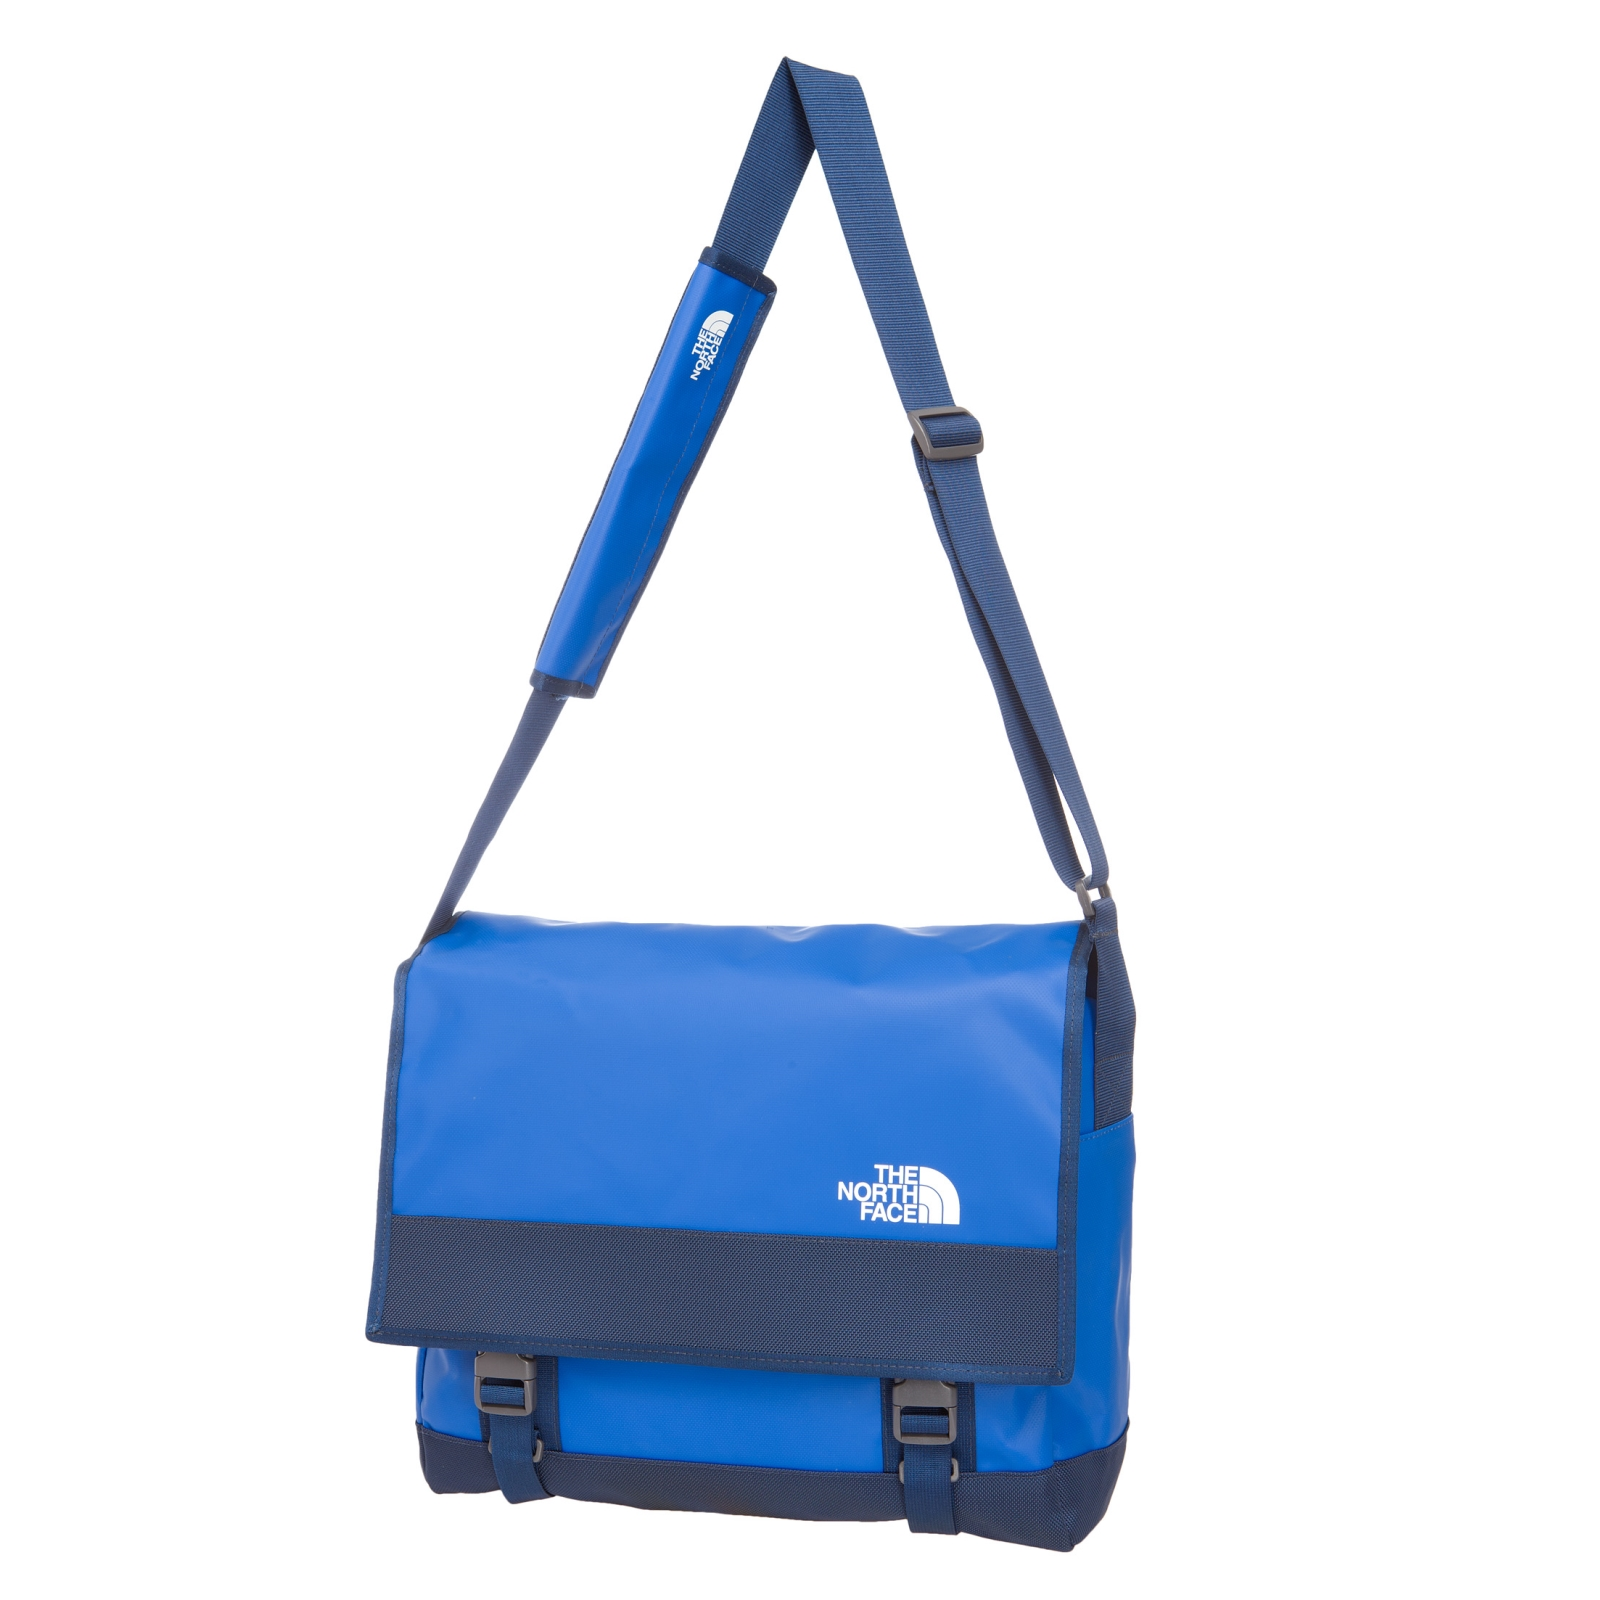 The North Face Schoudertas Base Camp Messenger Bag : Buy the north face base camp messenger bag m from outnorth